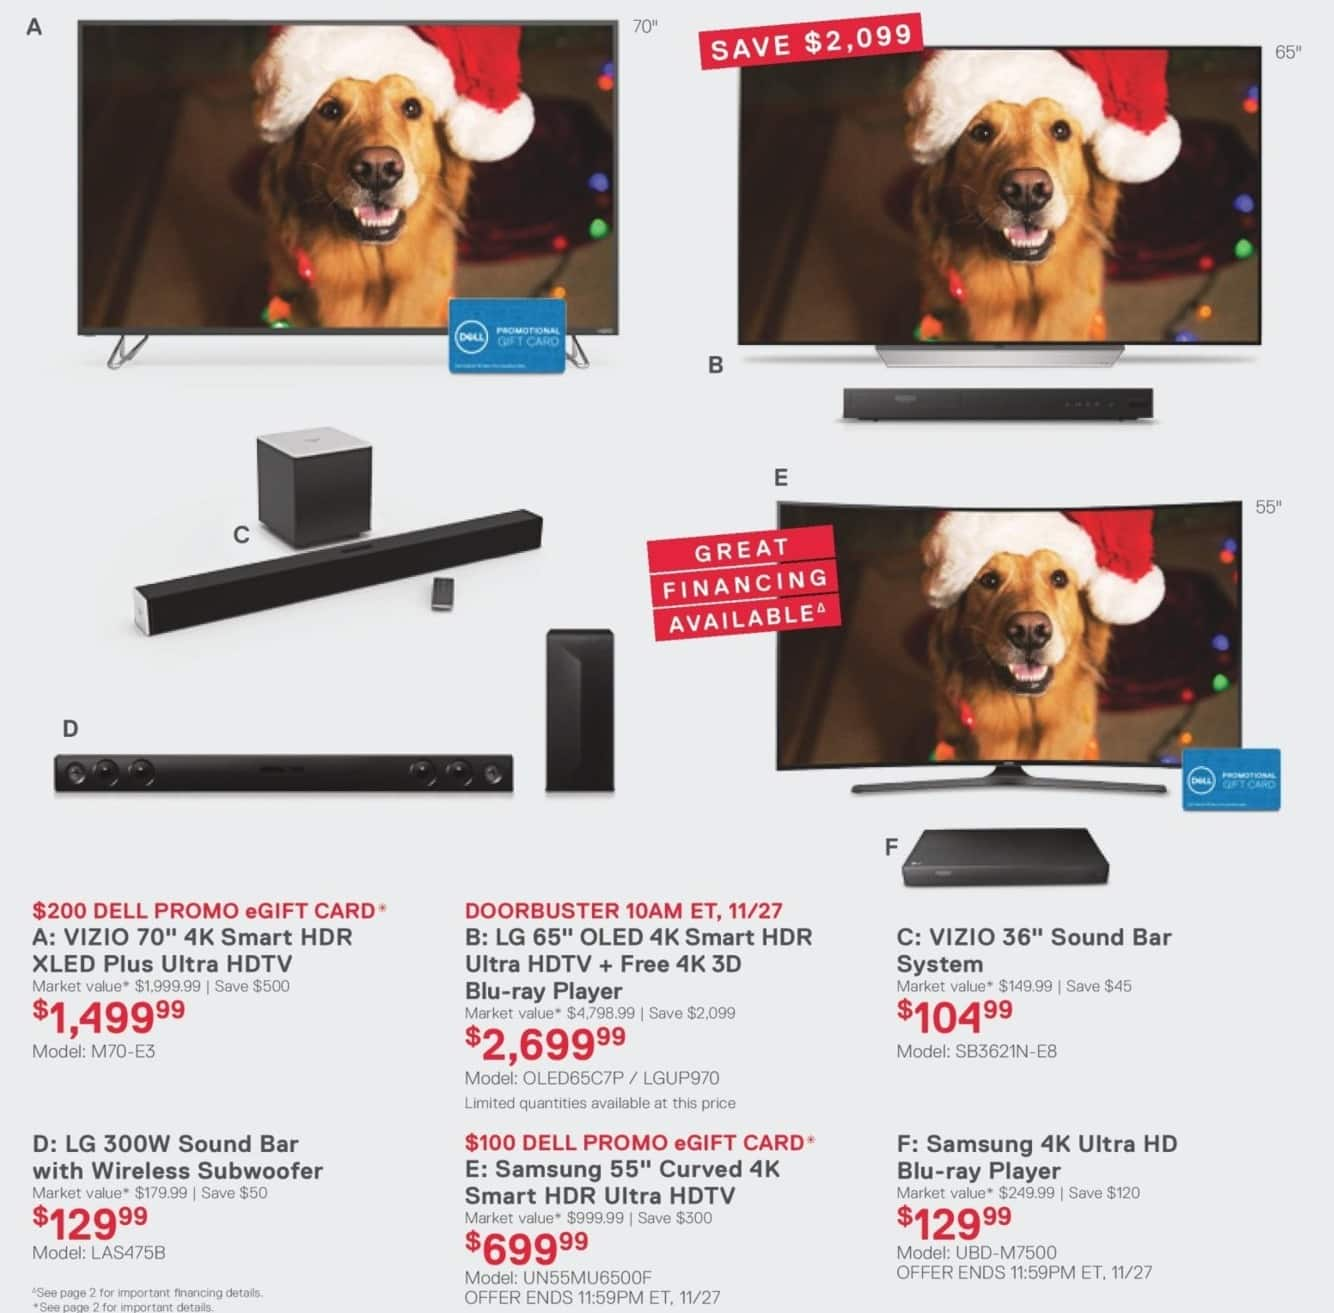 Dell Home & Office Cyber Monday: LG 300W Sound Bar w/ Wireless Subwoofer for $129.99